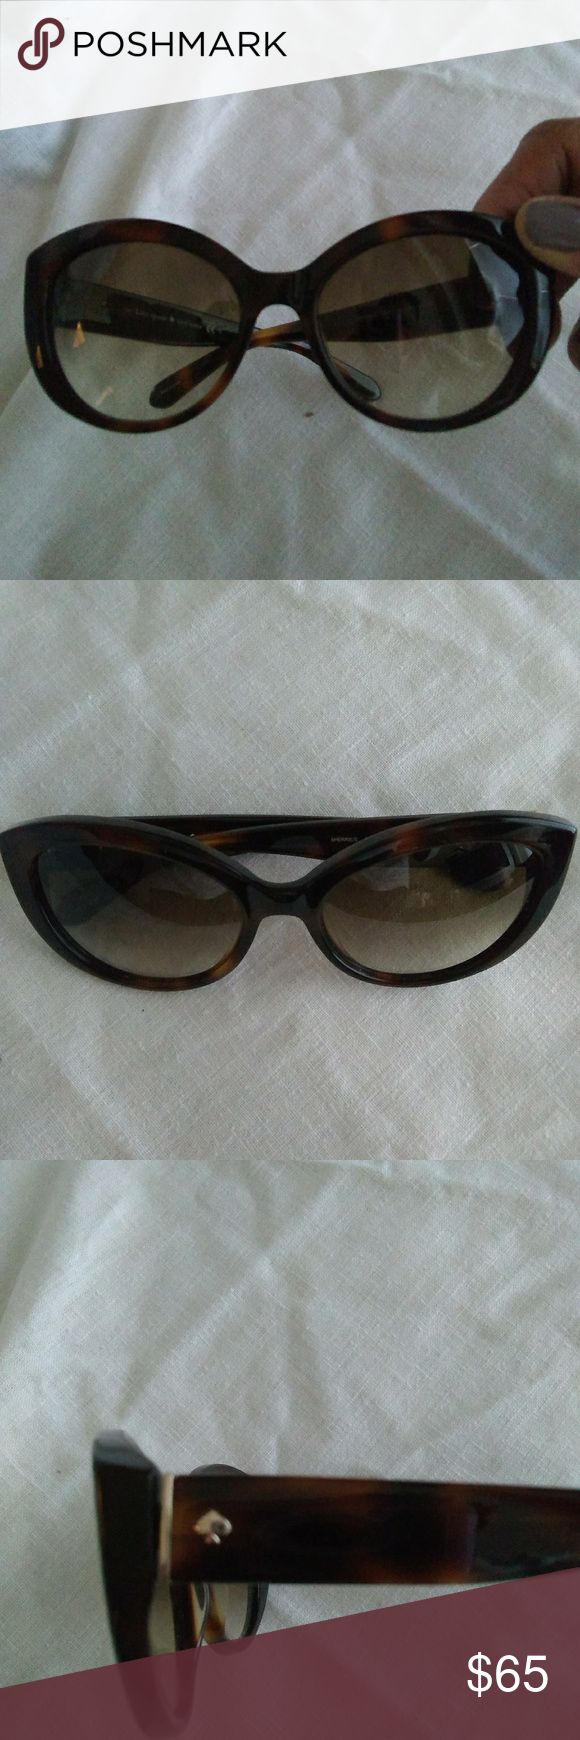 Kate Spade Sherrie cat eye sunglasses Good condition, no